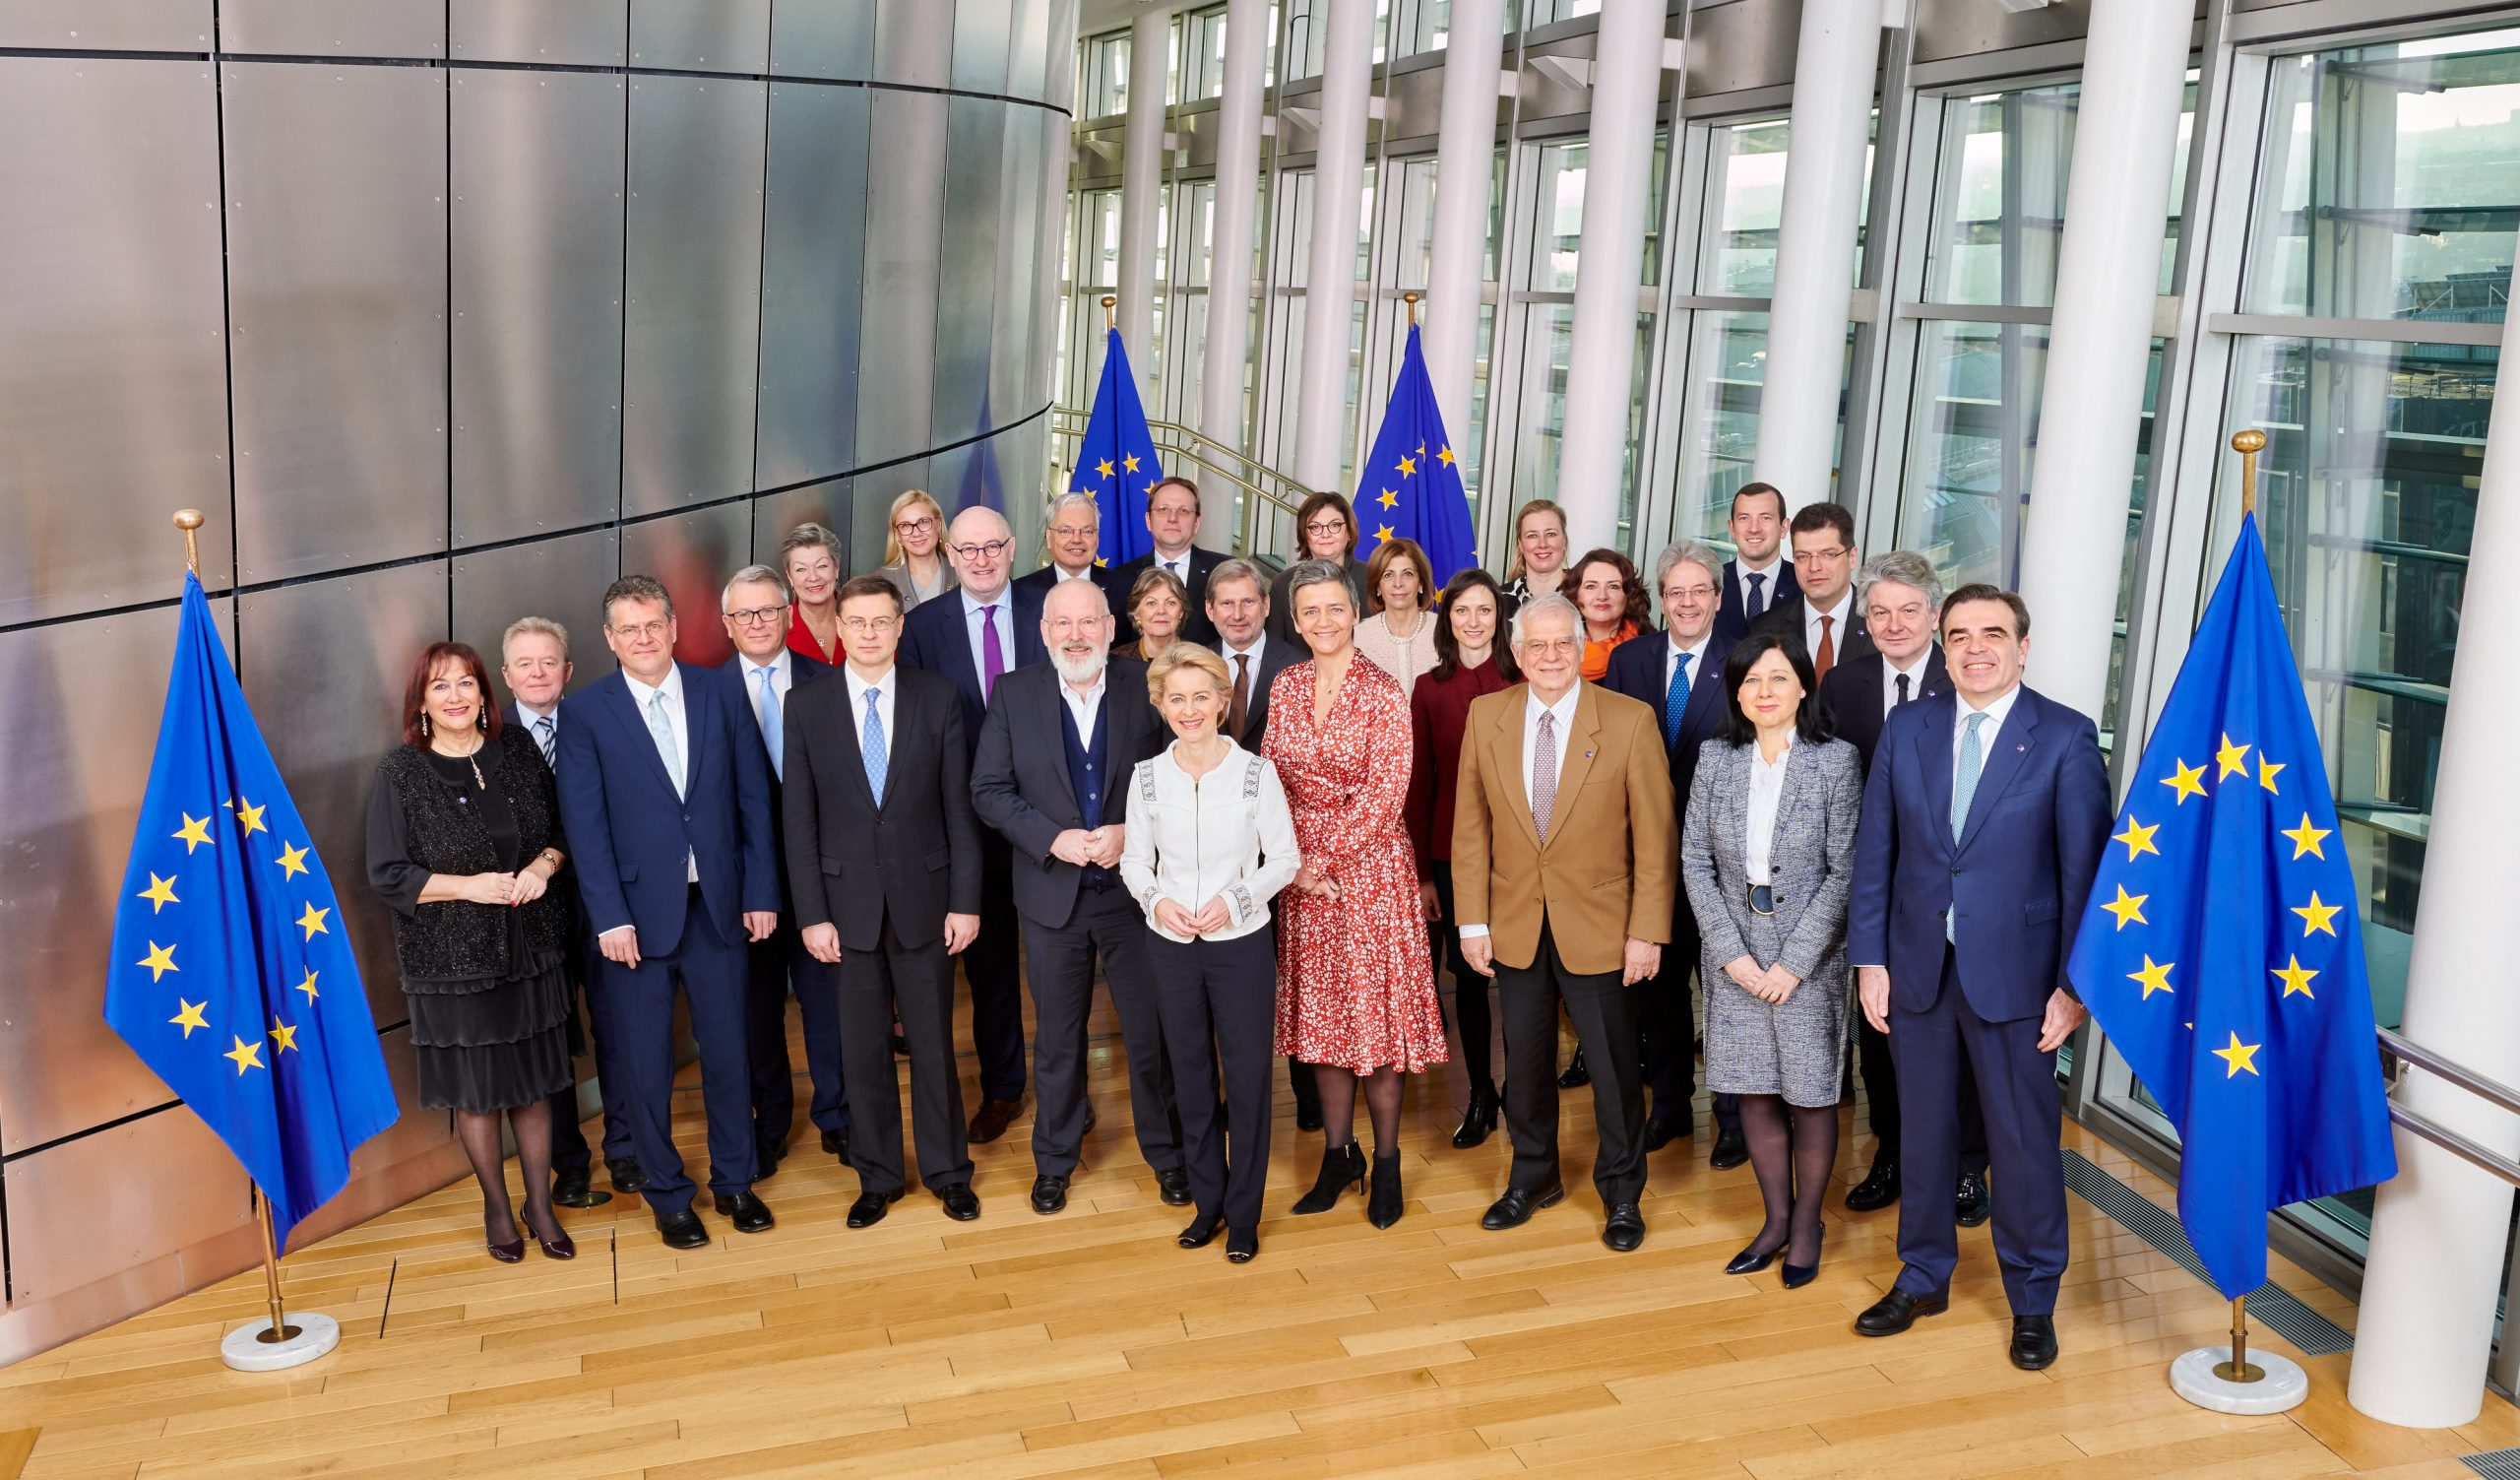 The new European Commission, led by President Ursula von der Leyen, started its term on 1 December 2019.